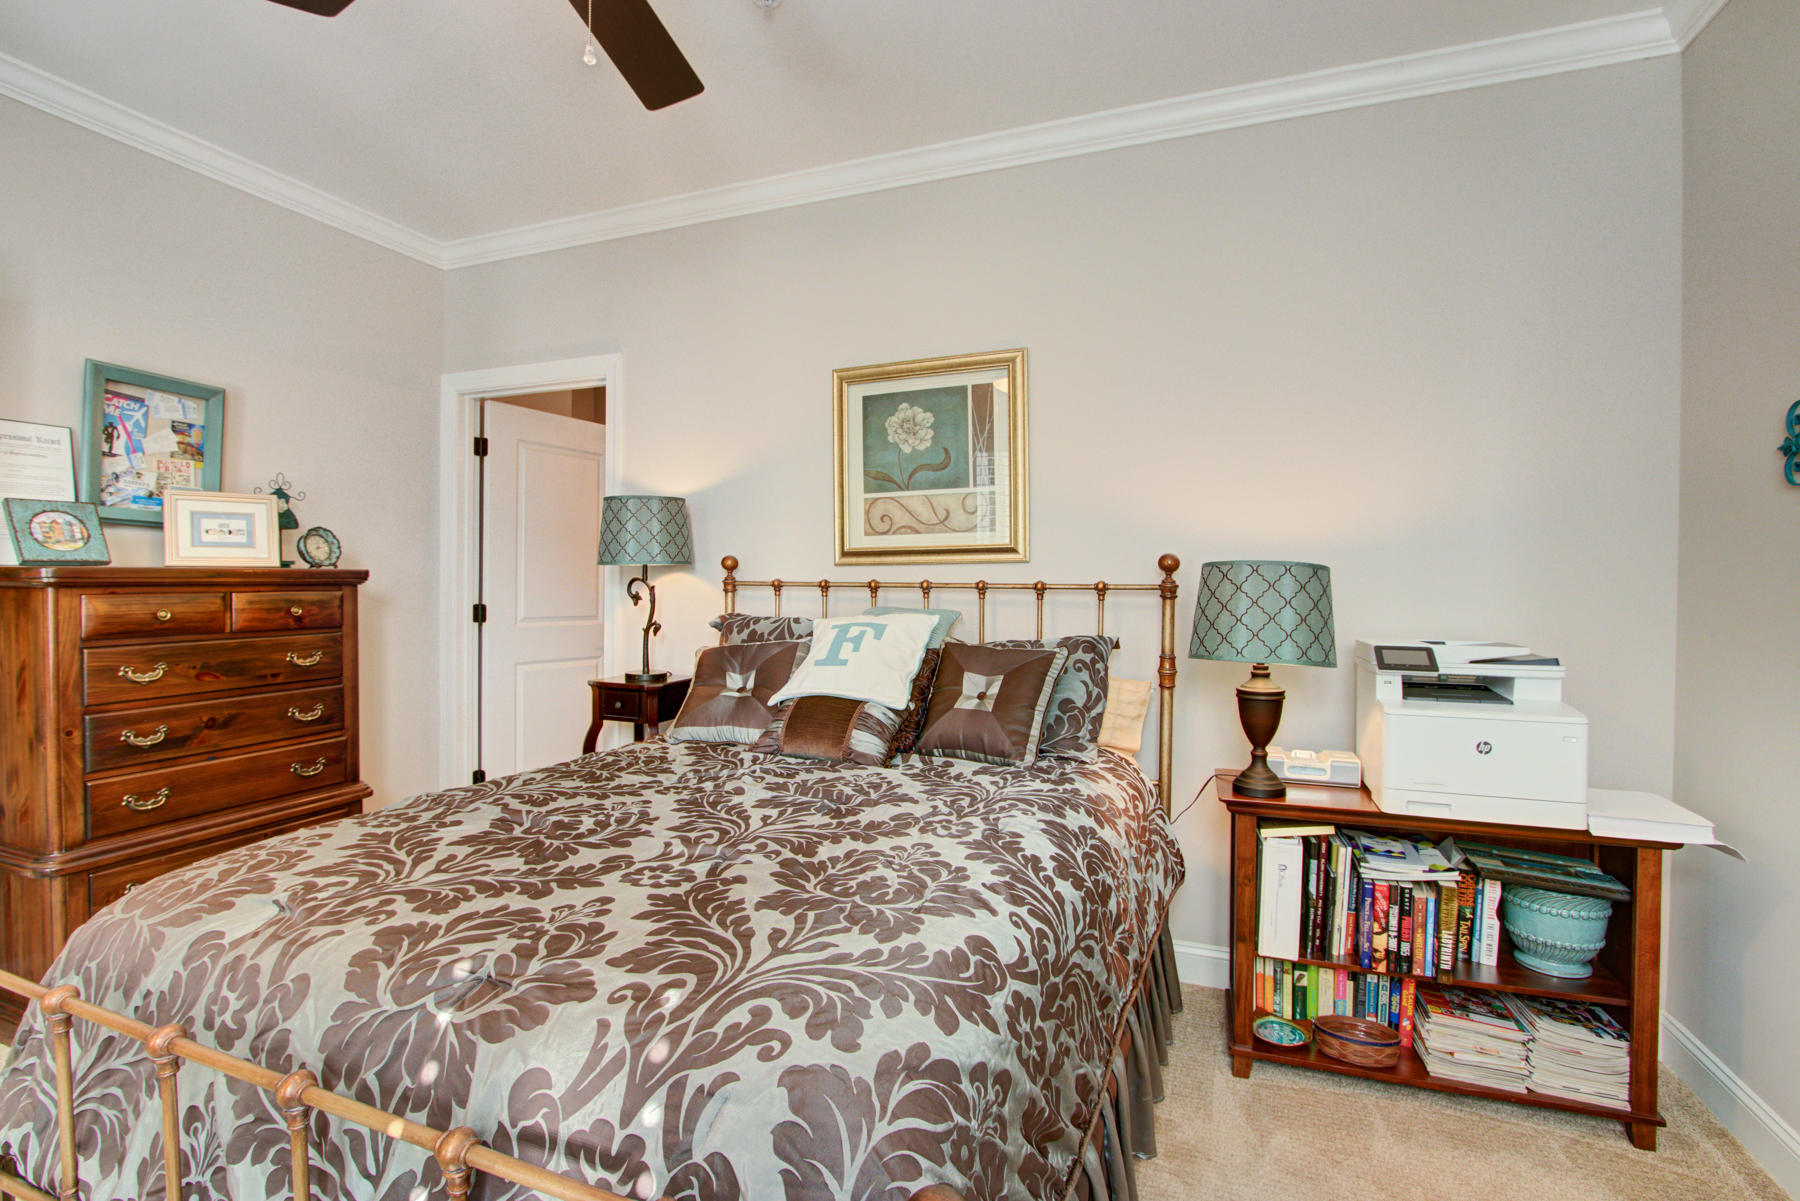 George And Society Condos For Sale - 76 Society, Charleston, SC - 26